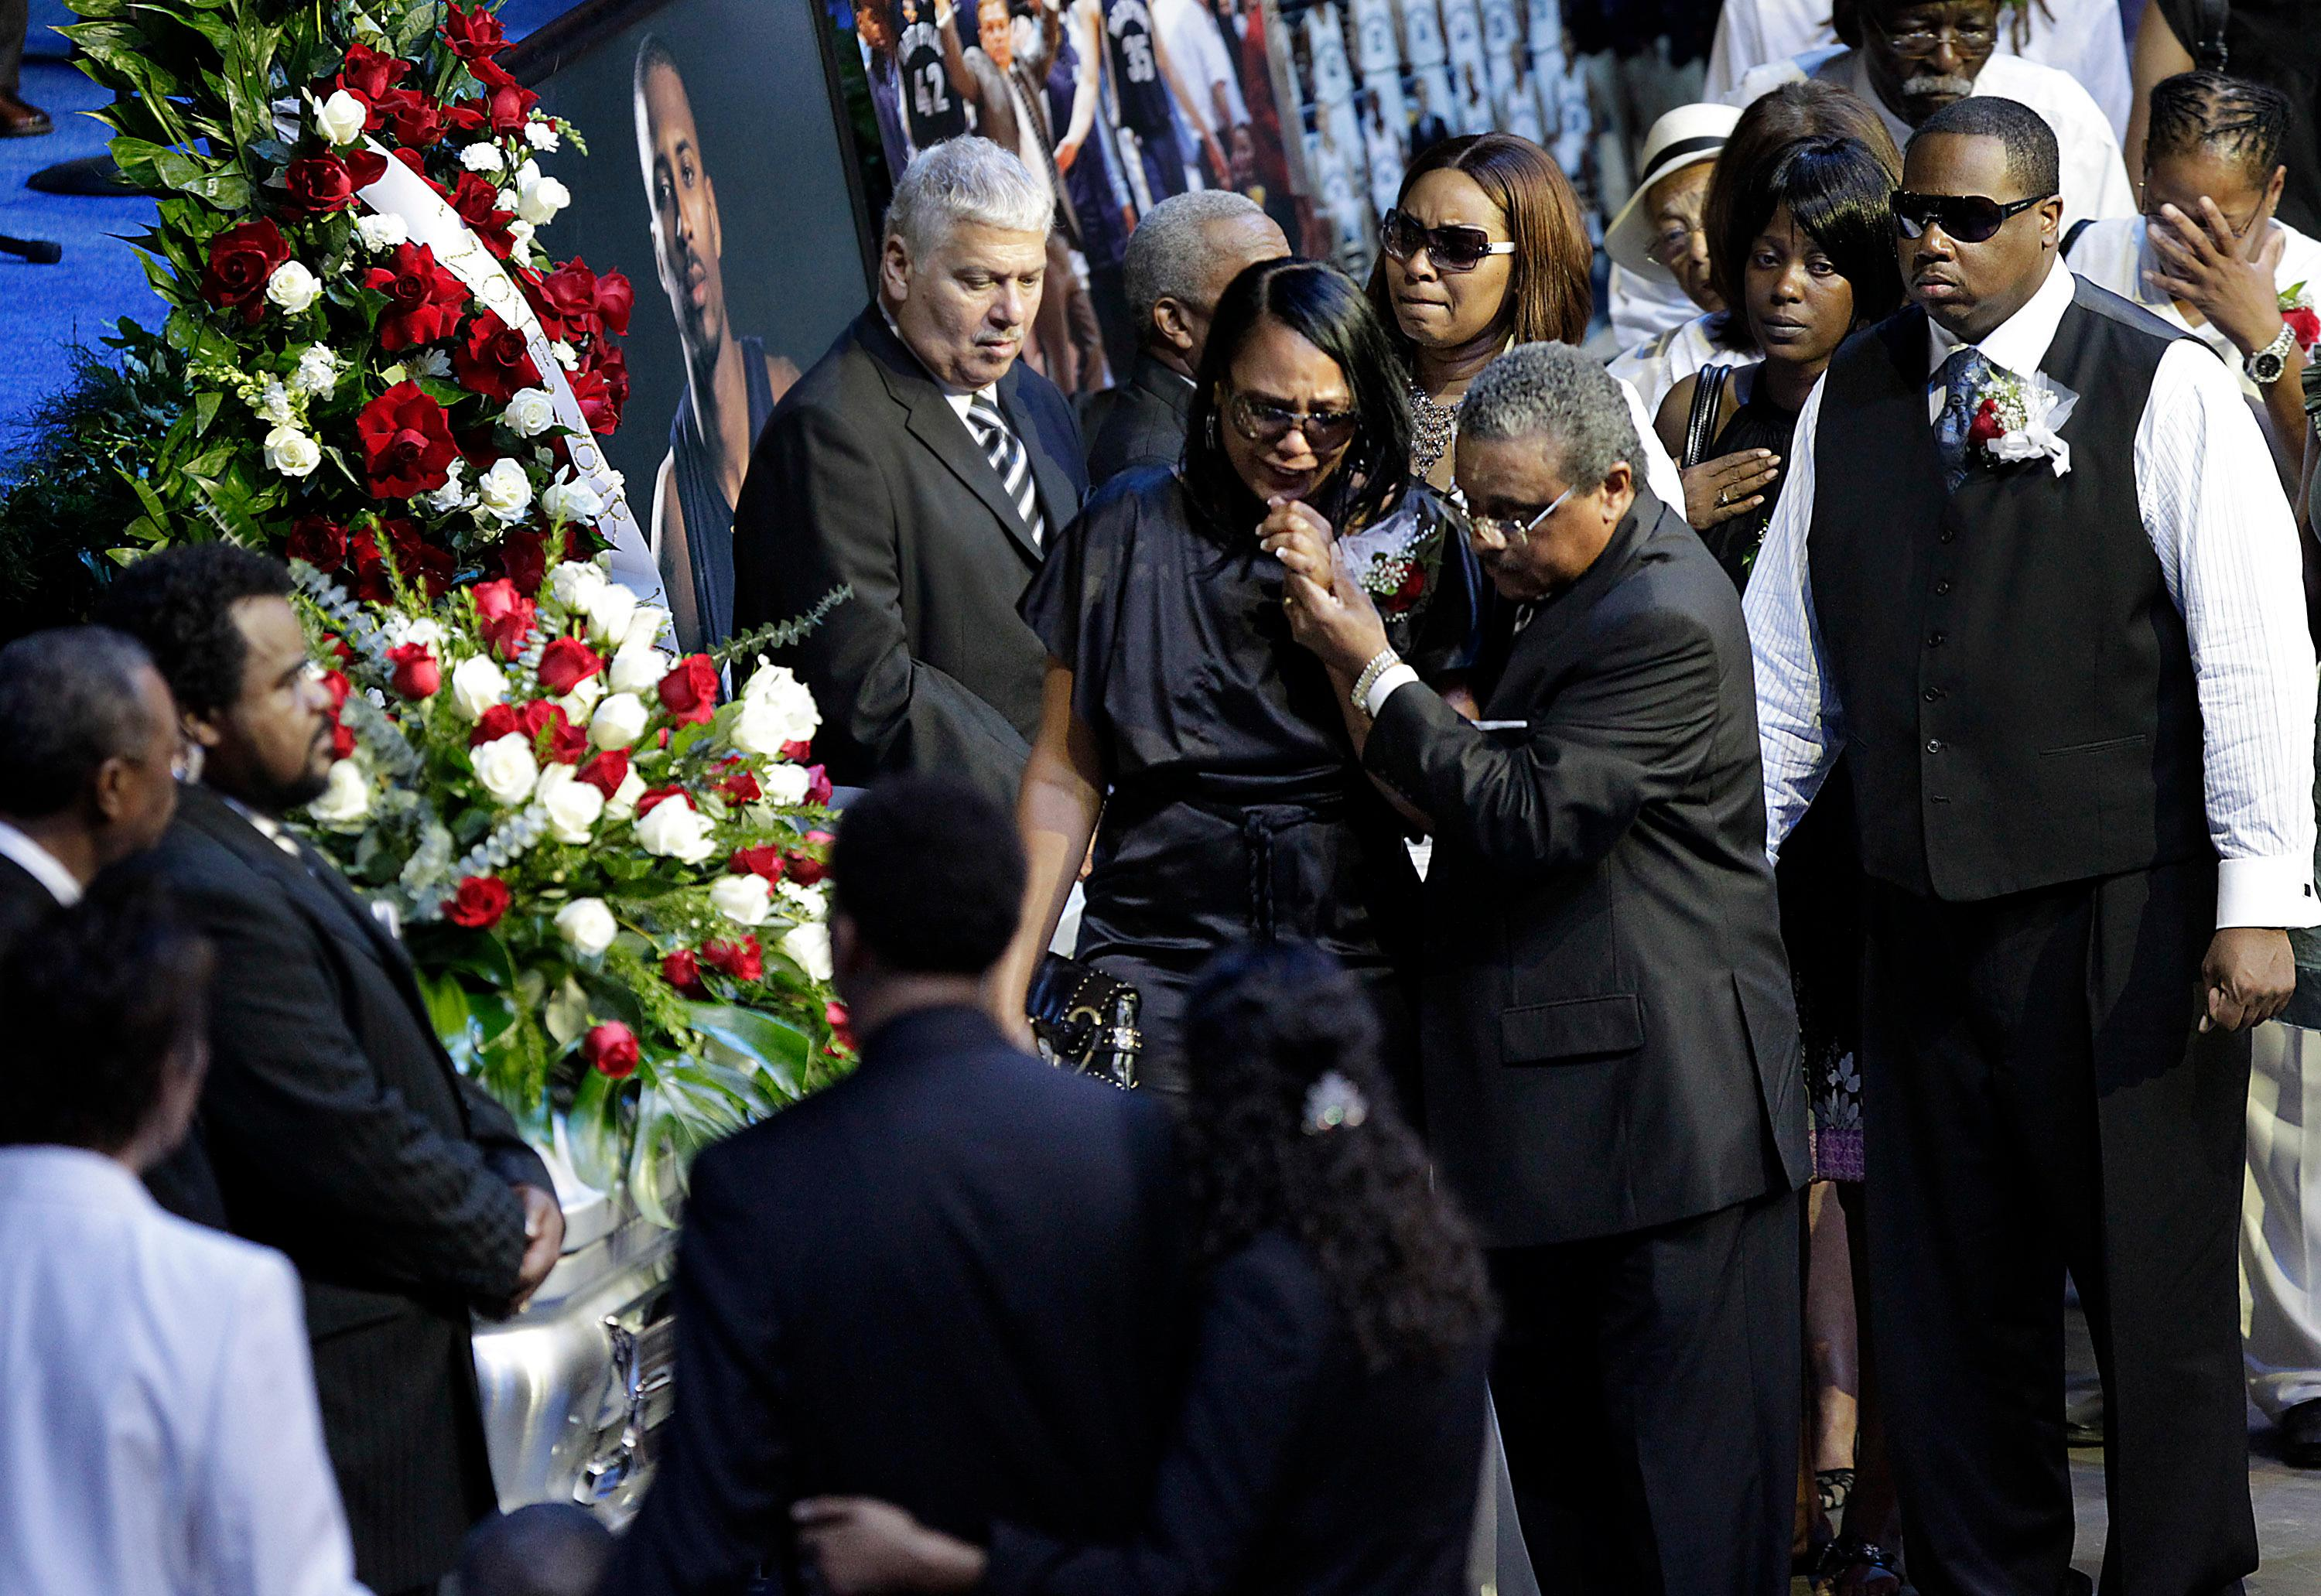 FILE - In this Aug. 4, 2010, file photo, Sherra Wright, the ex-wife of slain NBA basketball player Lorenzen Wright, grieves at the casket of Lorenzen Wright during a memorial service at the FedExForum in Memphis, Tenn. Authorities said Saturday, Dec 16, 2017, that Sherra Wright was charged with first-degree murder in the death of her ex-husband. (AP Photo/Lance Murphey, File)